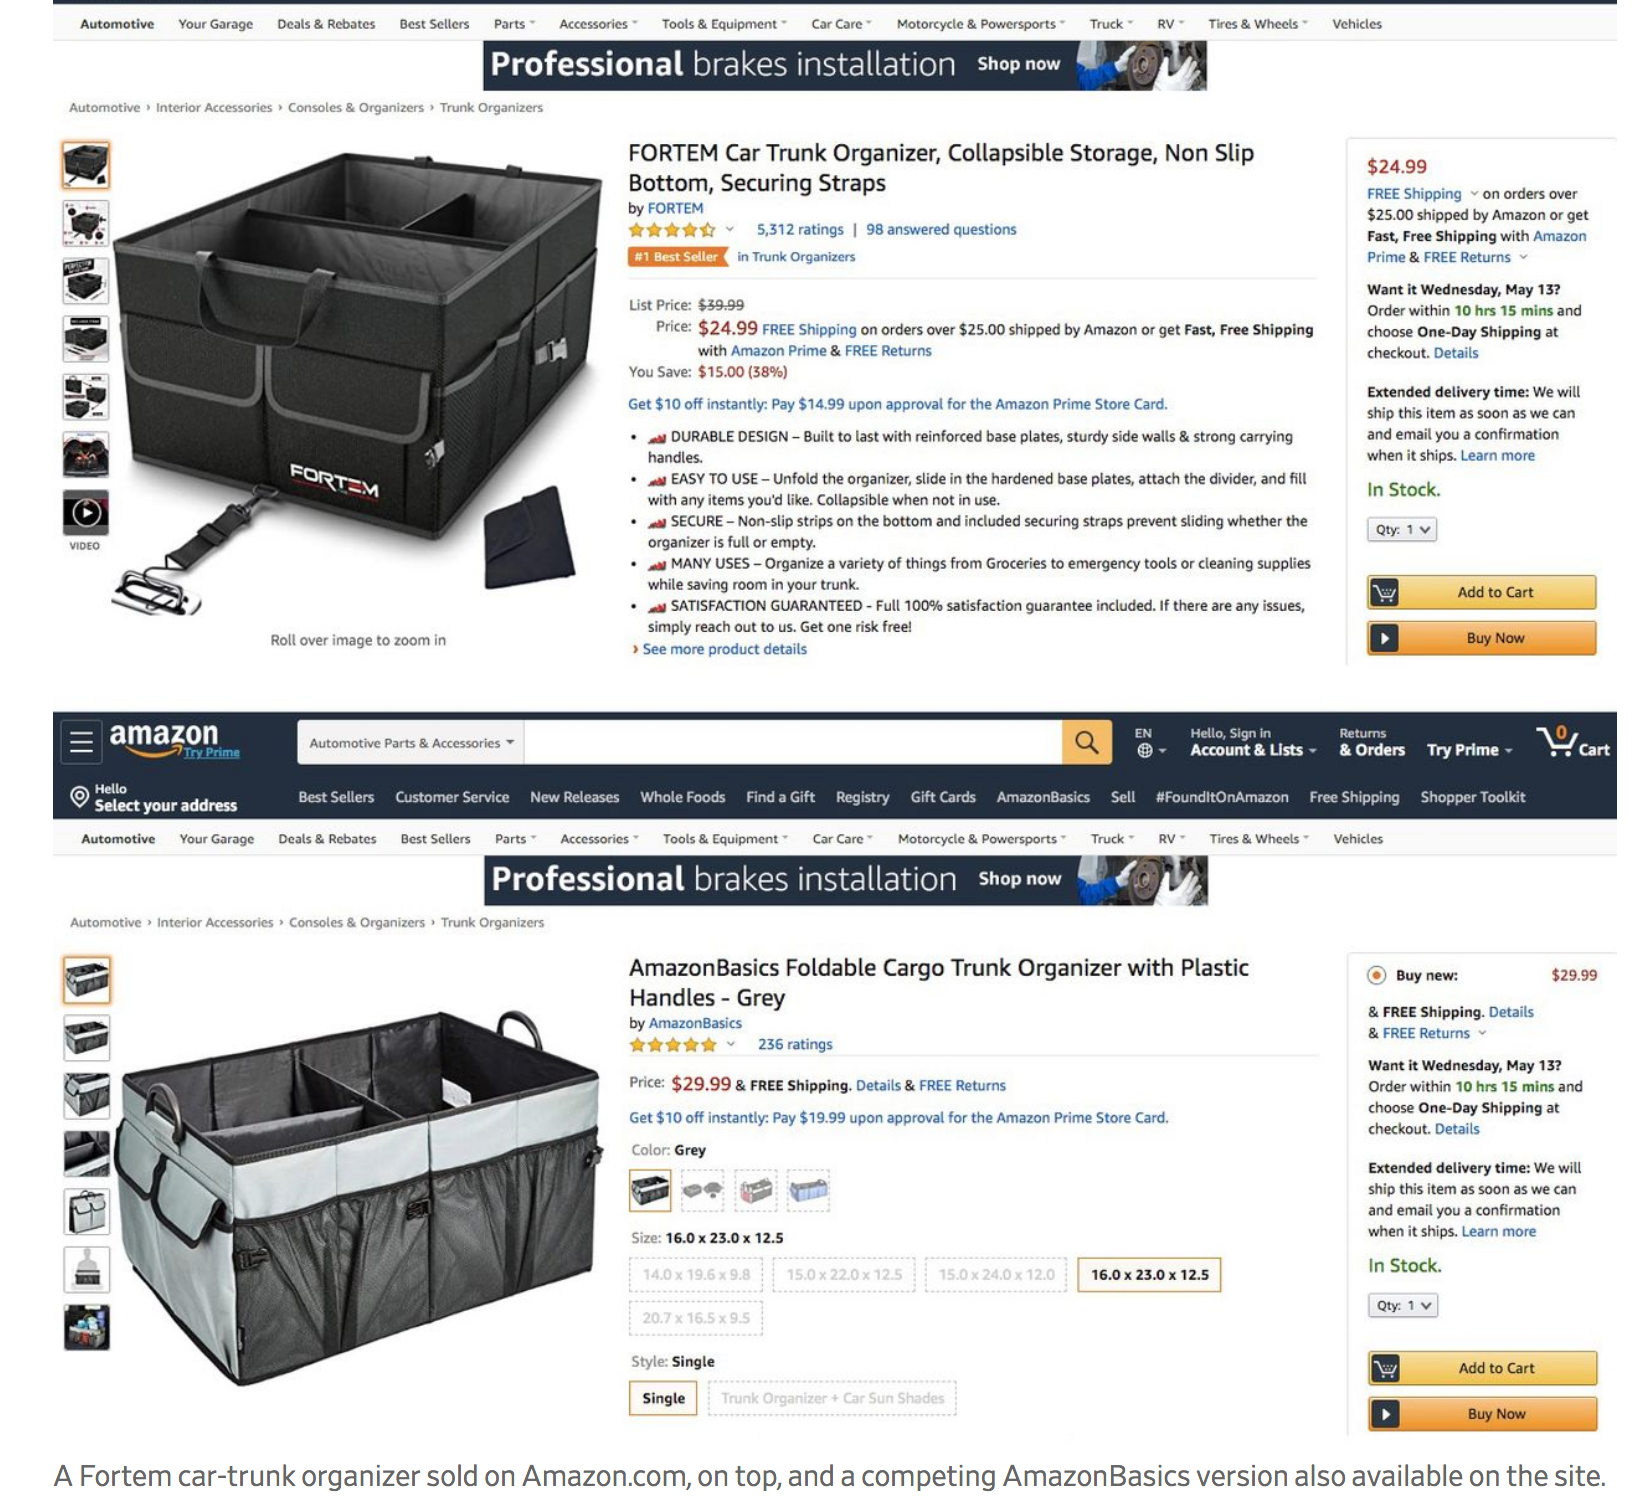 Amazon Tests Pop-Up Feature Touting Its Lower-Priced Products Over Resellers (#GotBitcoin?)